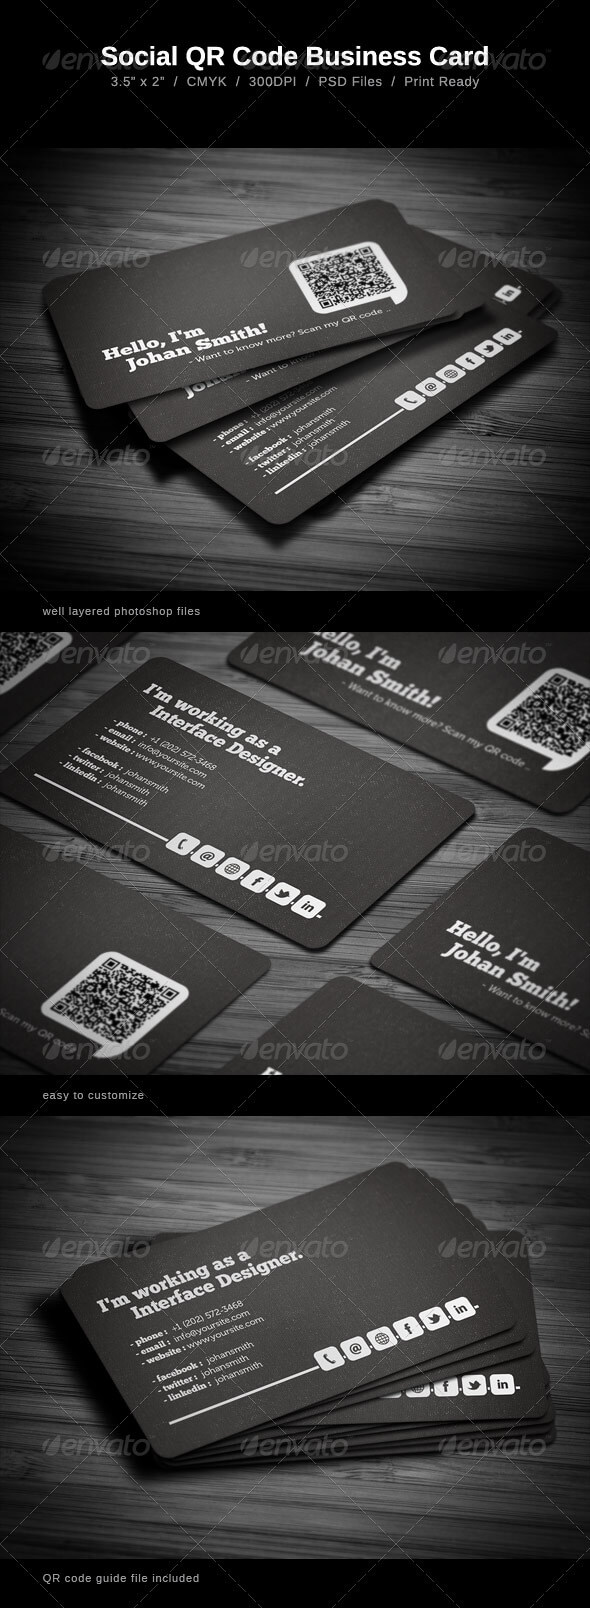 8 Noteworthy Back Of Business Cards Ideas (Design + Marketing) Regarding Business Cards For Teachers Templates Free